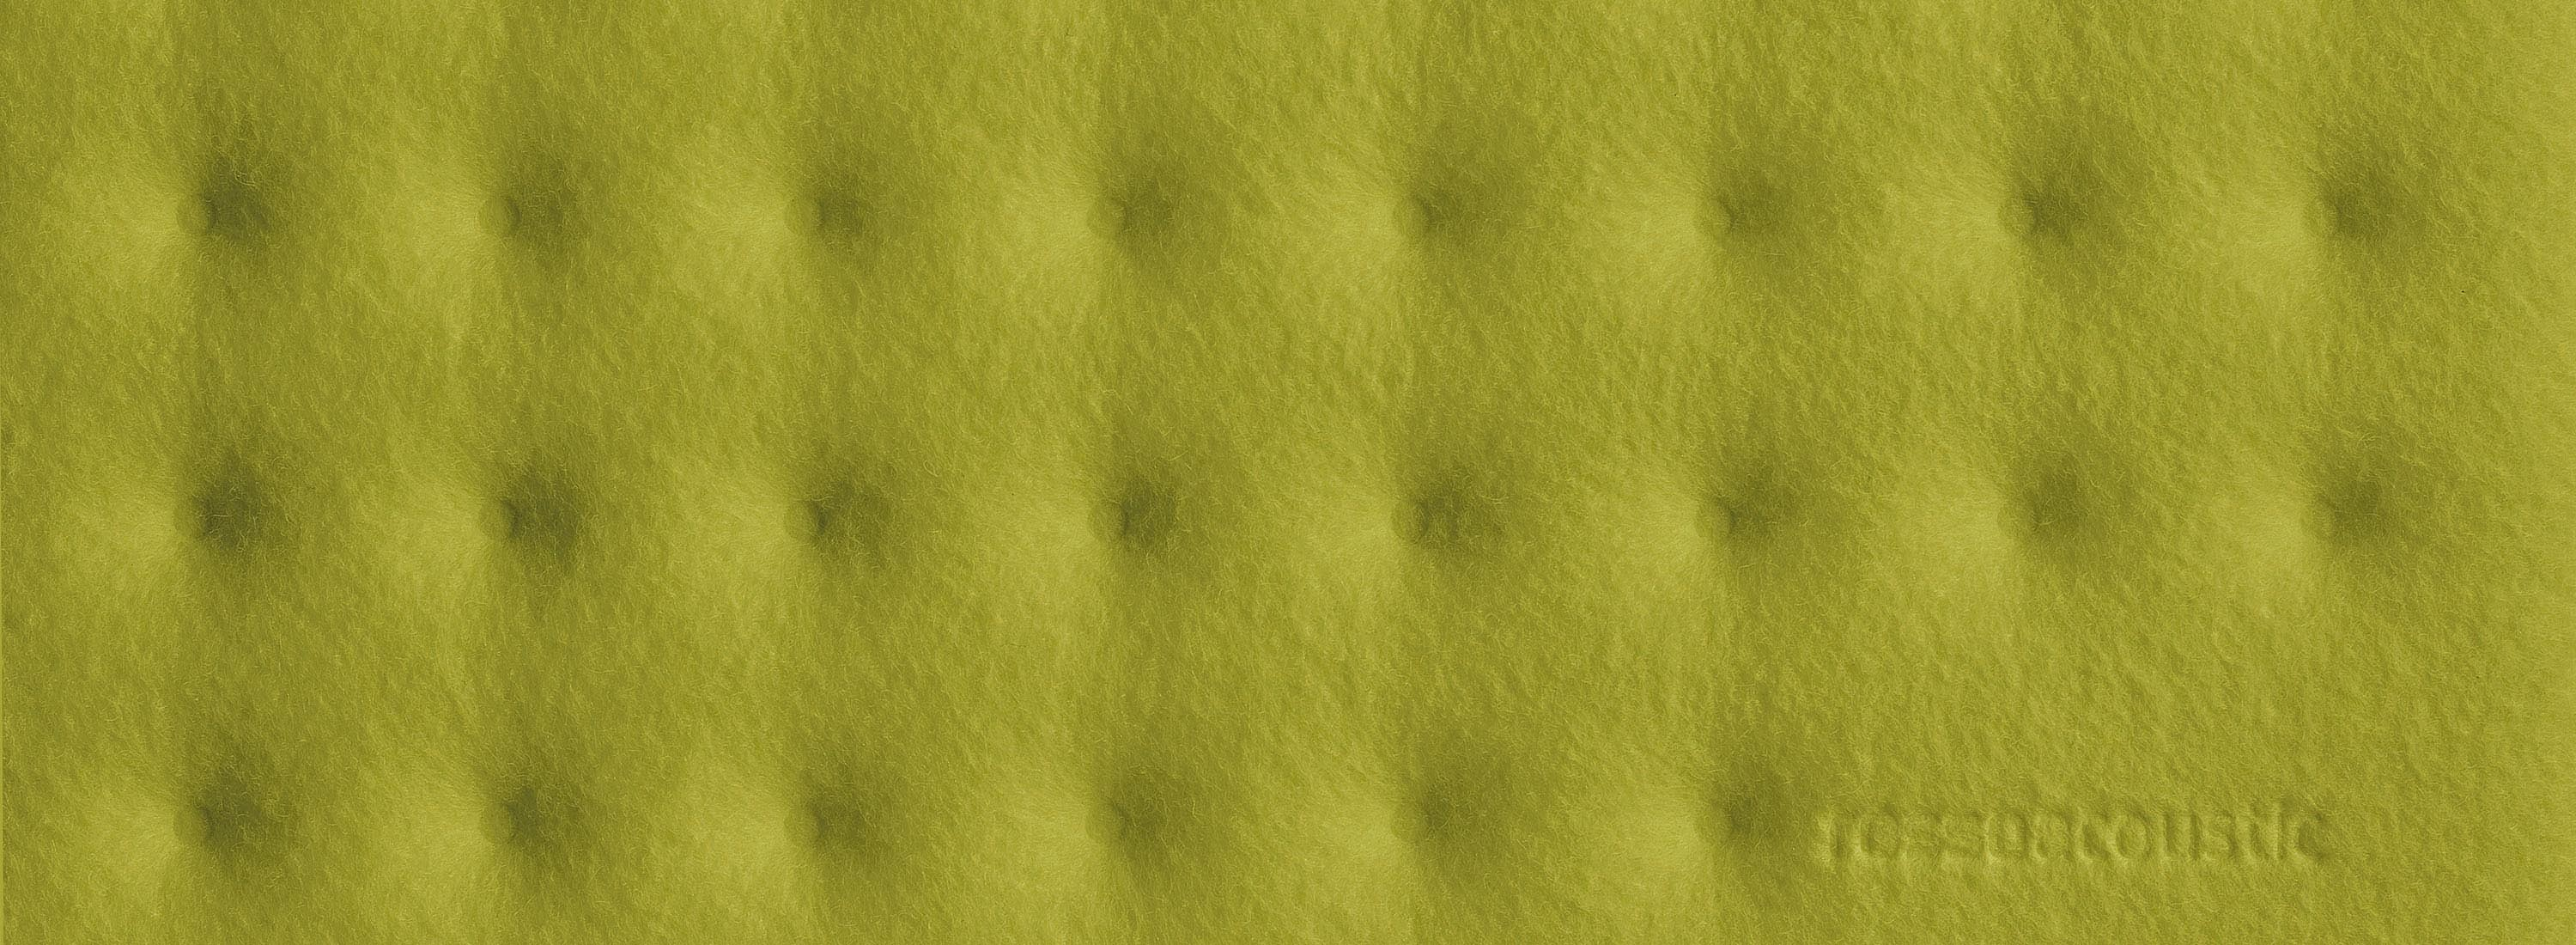 Rossoacoustic PAD Q 600 Plus, 900 x 900 x 60 mm, soft moss